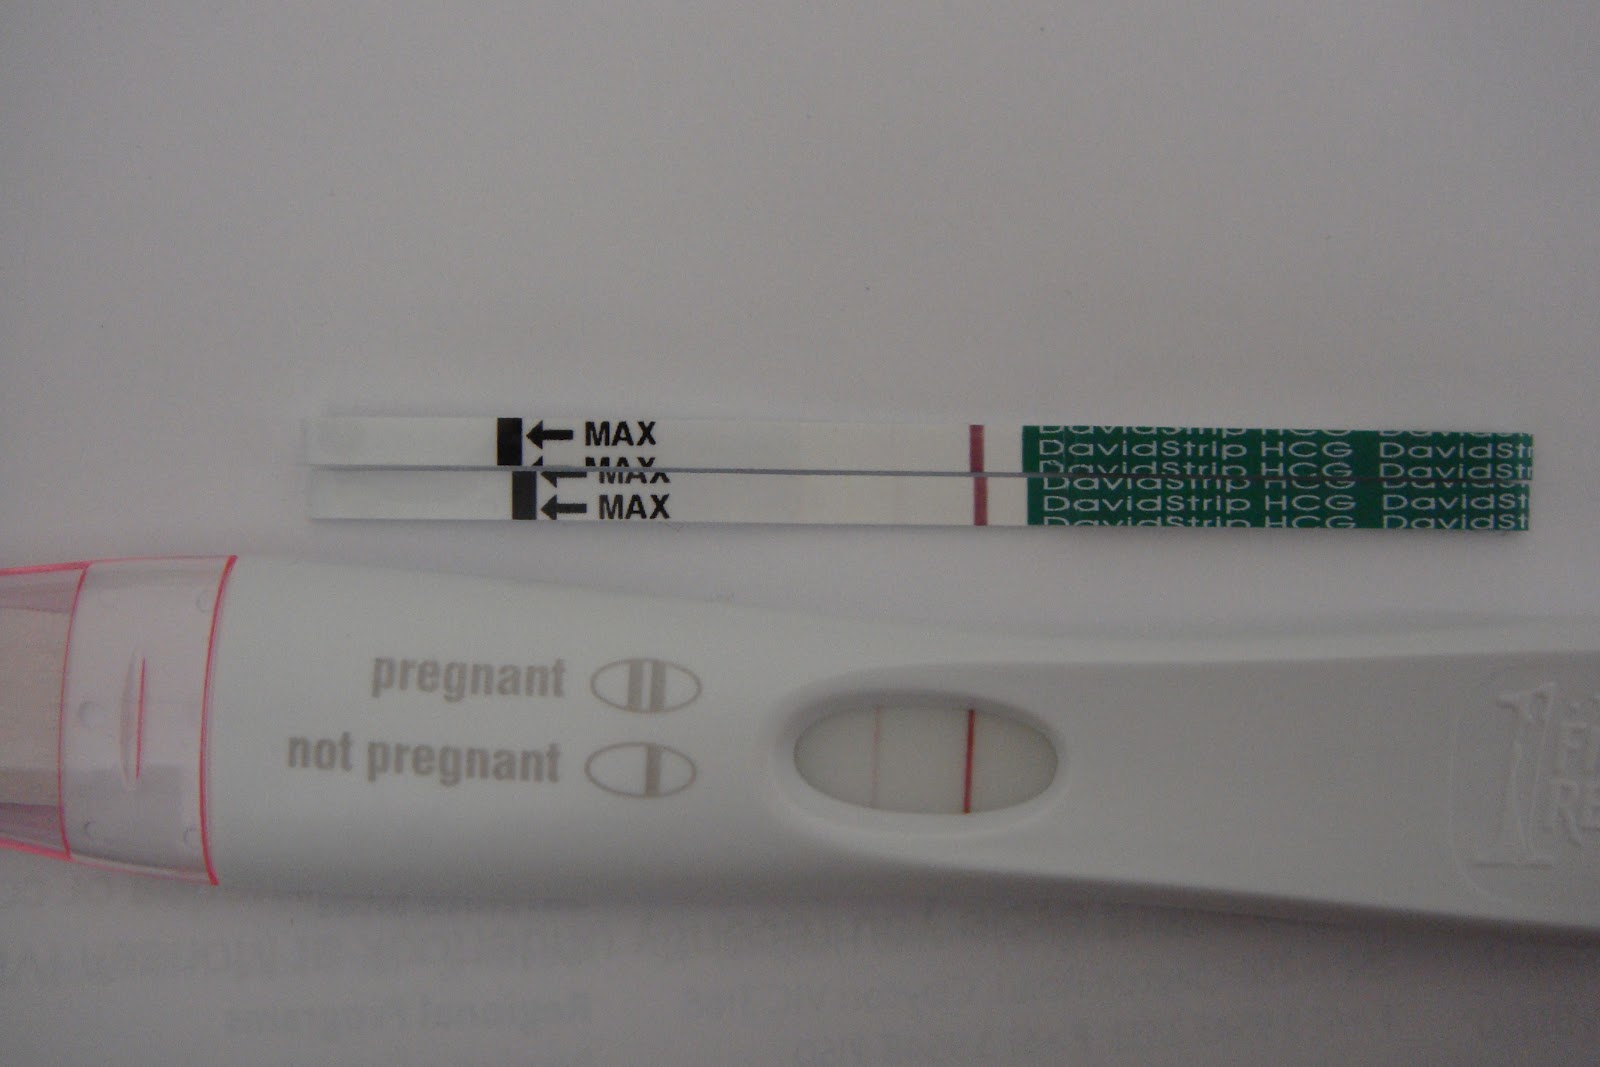 Baby wherefore A R T  thou?: 11dpt  BFP!!!